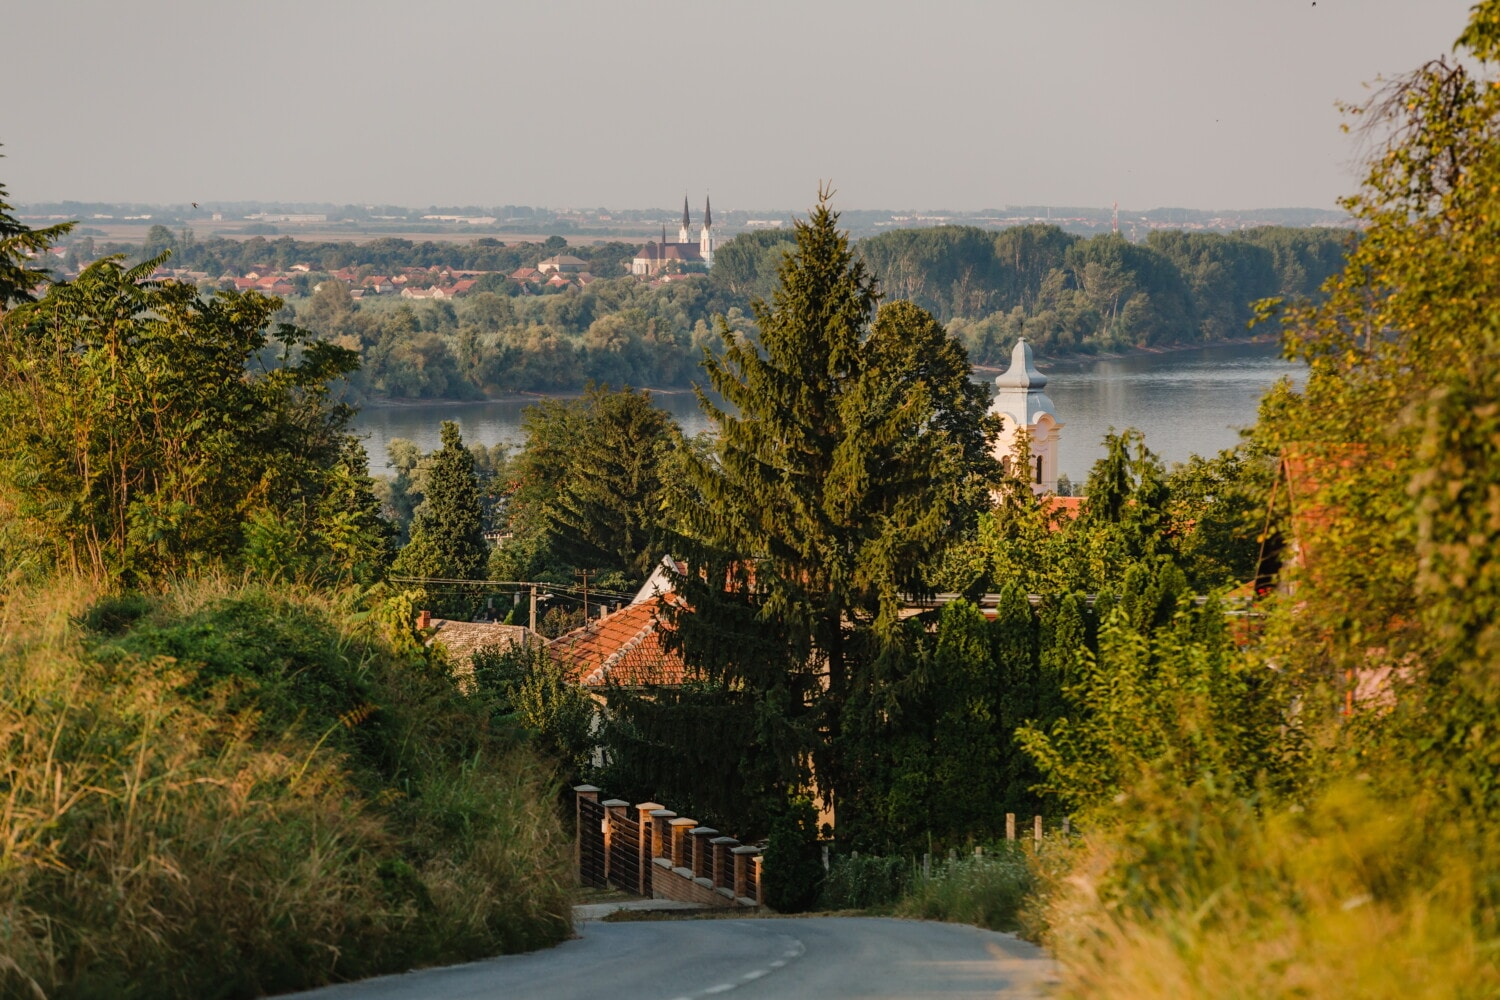 road, downhill, church tower, riverbank, urban area, tree, trees, forest, landscape, water